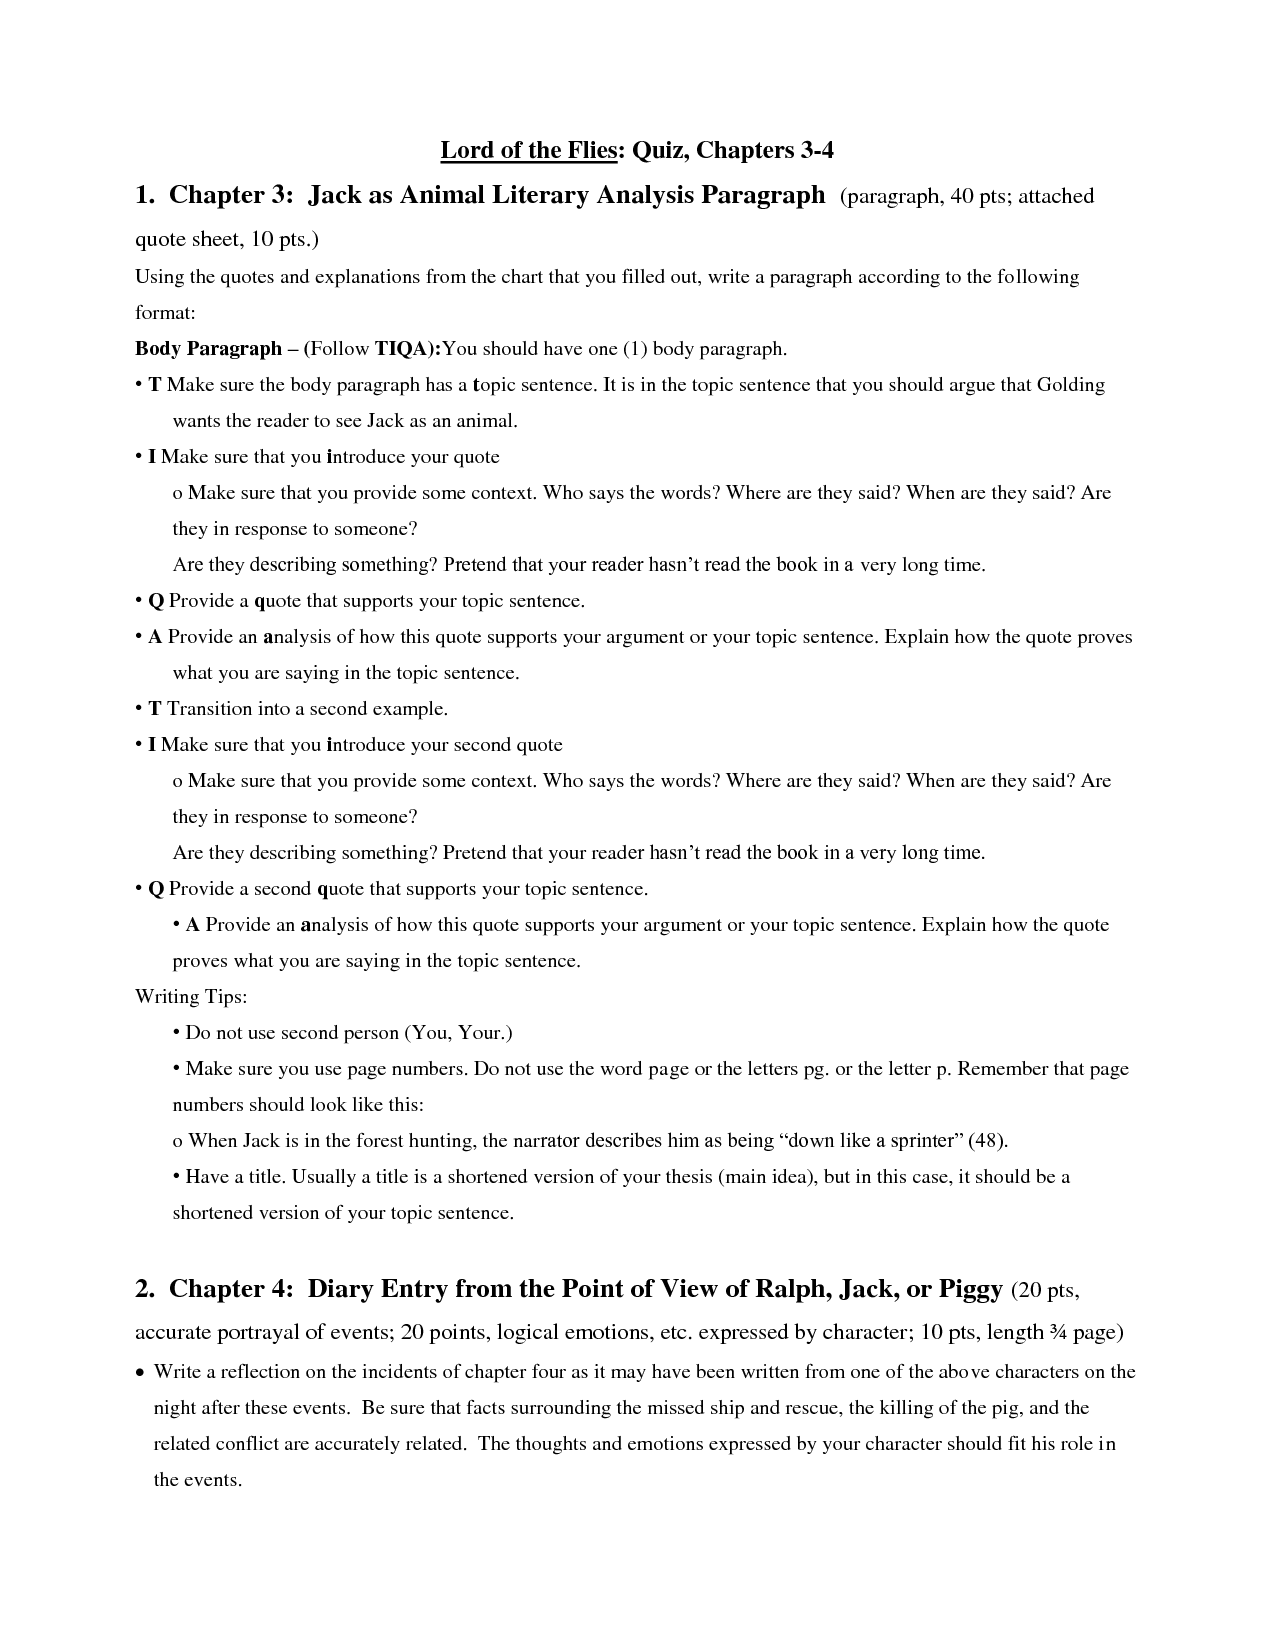 thesis statement of lord of the flies Lord of the flies study guide contains a biography of william golding, literature essays, quiz questions, major themes, characters, and a full summary and analysis.